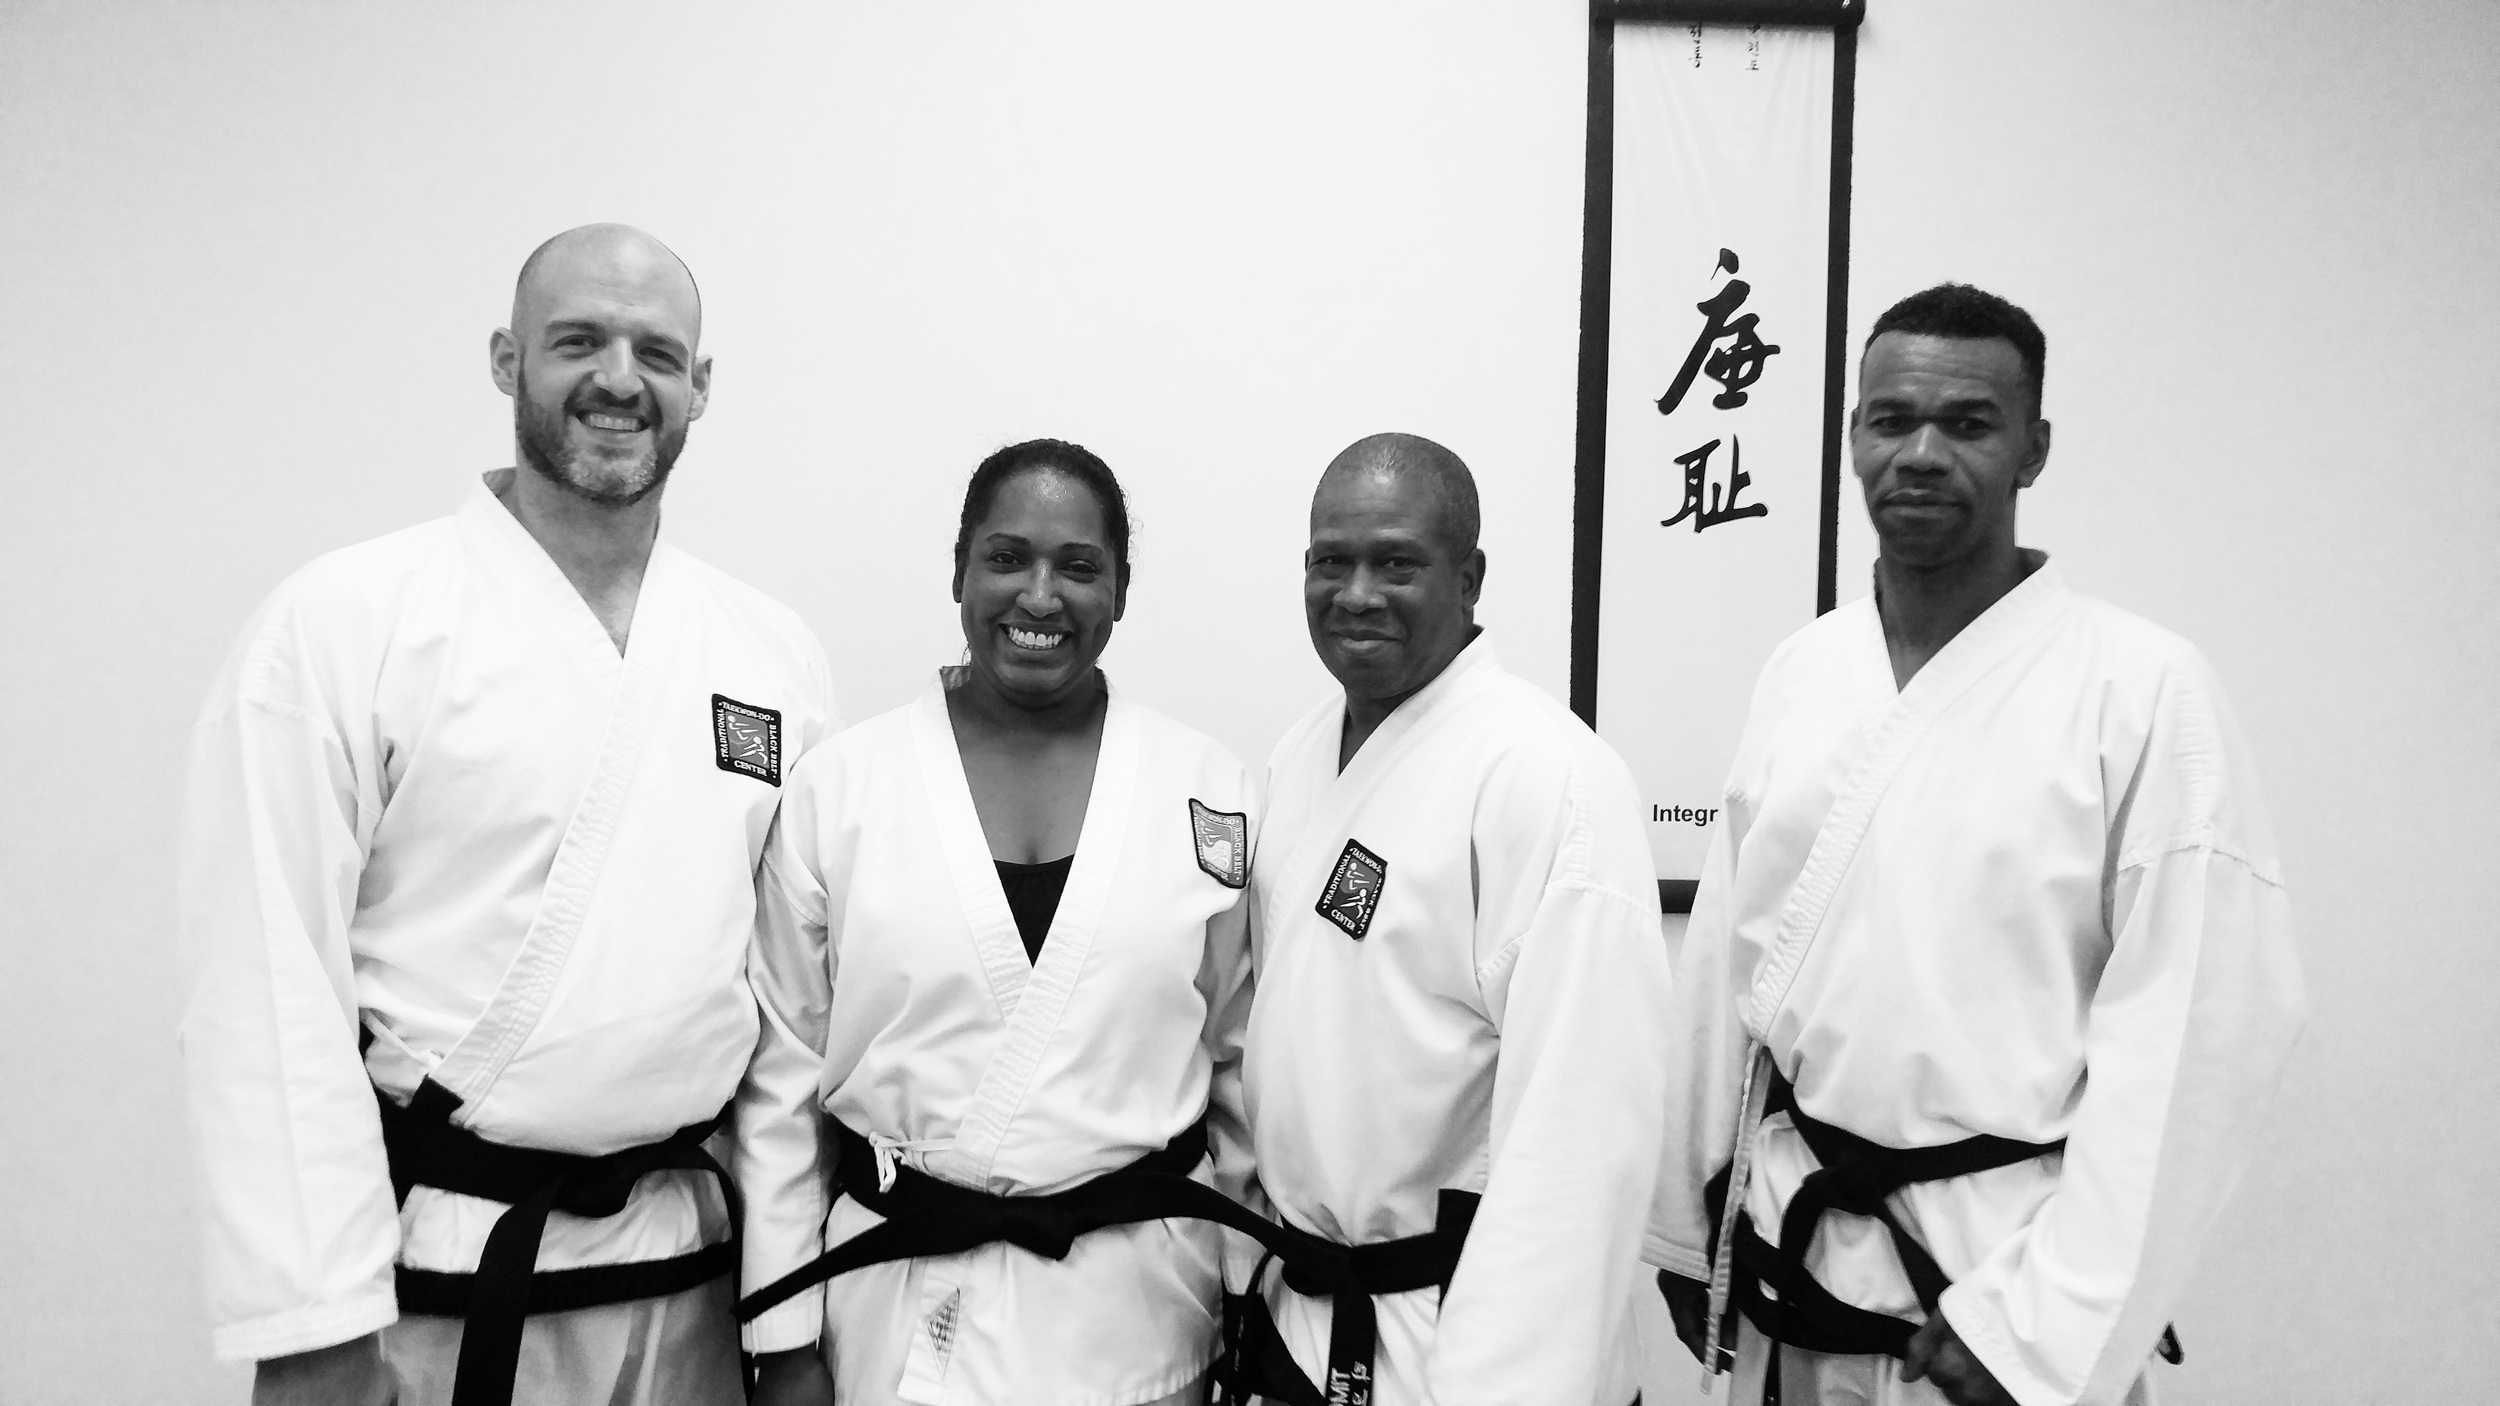 Carlos Rodriguez (Master Instructor), Tania Marballie (Owner/Instructor), Timothy West (Assistant Instructor), Calvin Salomon (Assistant Instructor)